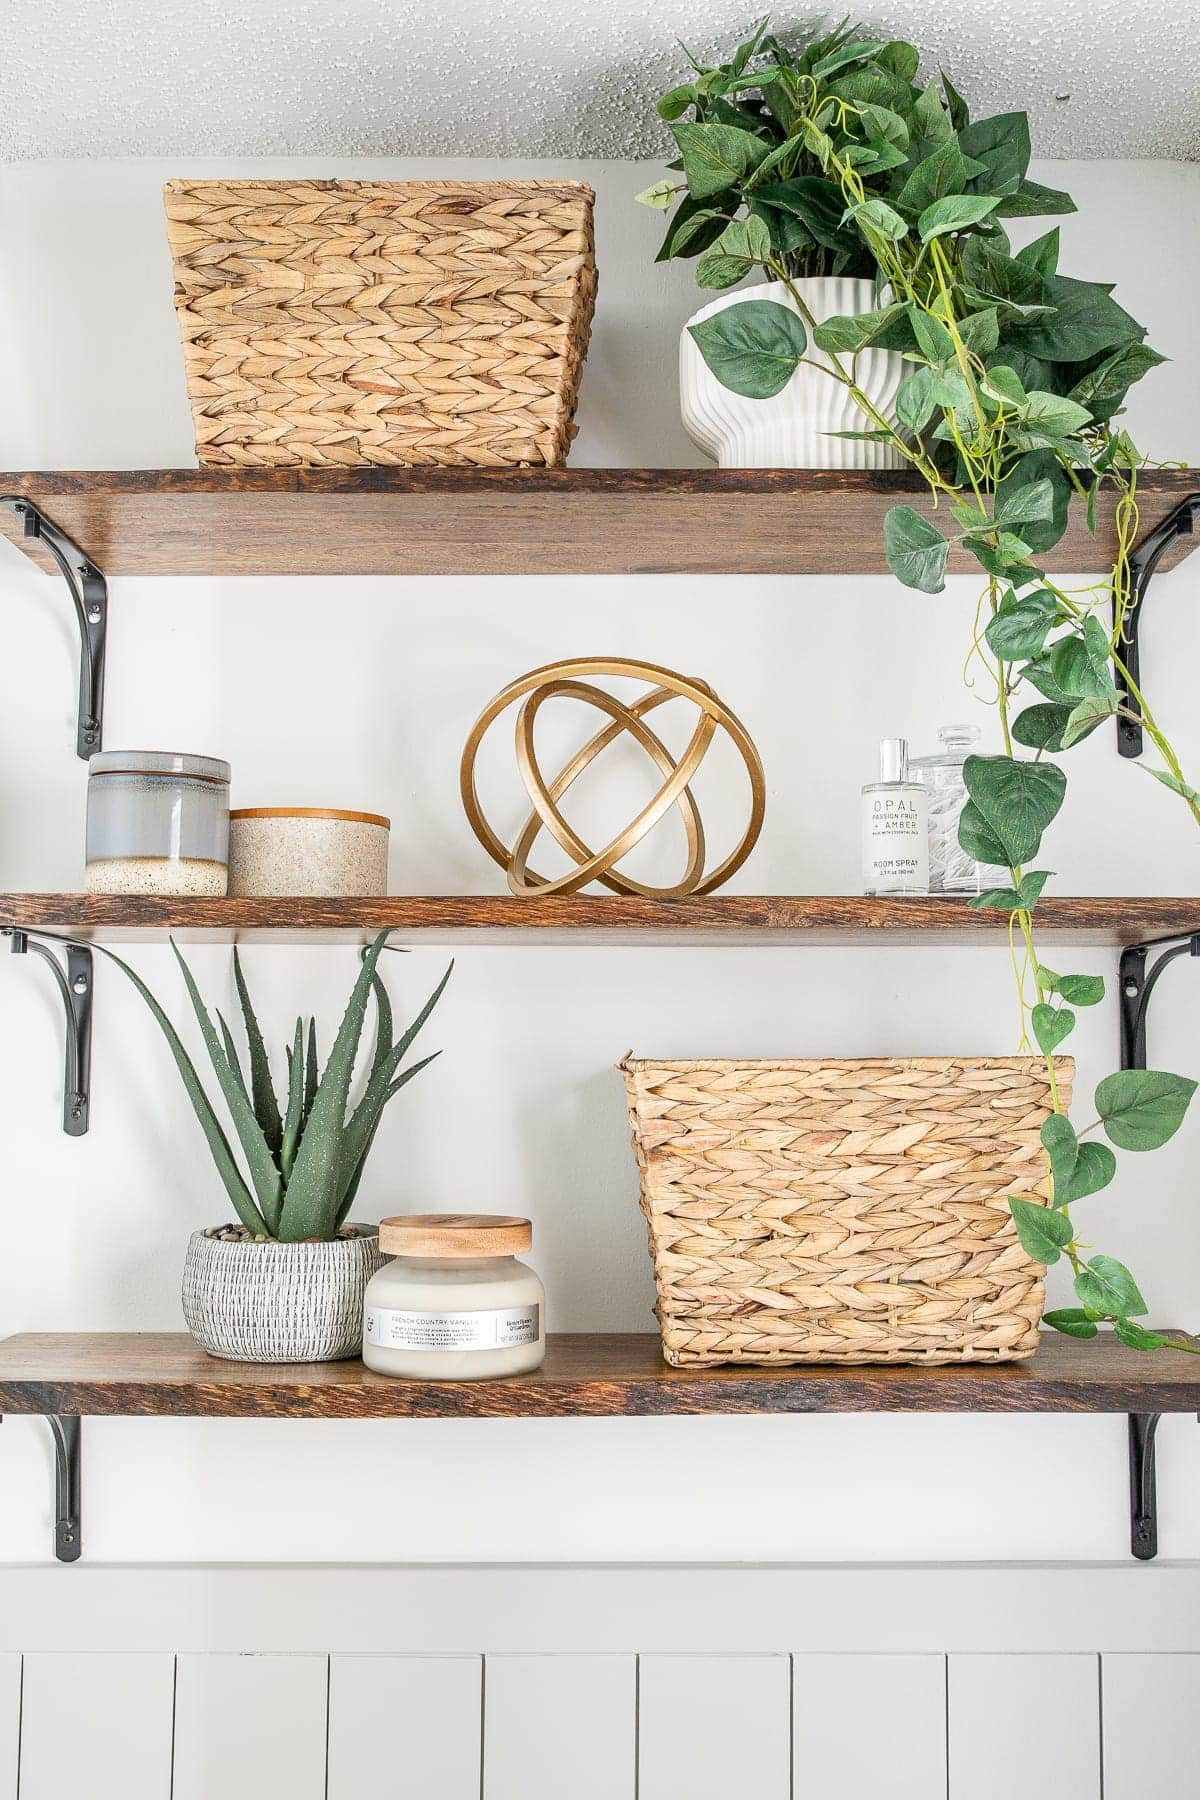 bathroom shelves with baskets, small storage, plants, and decor